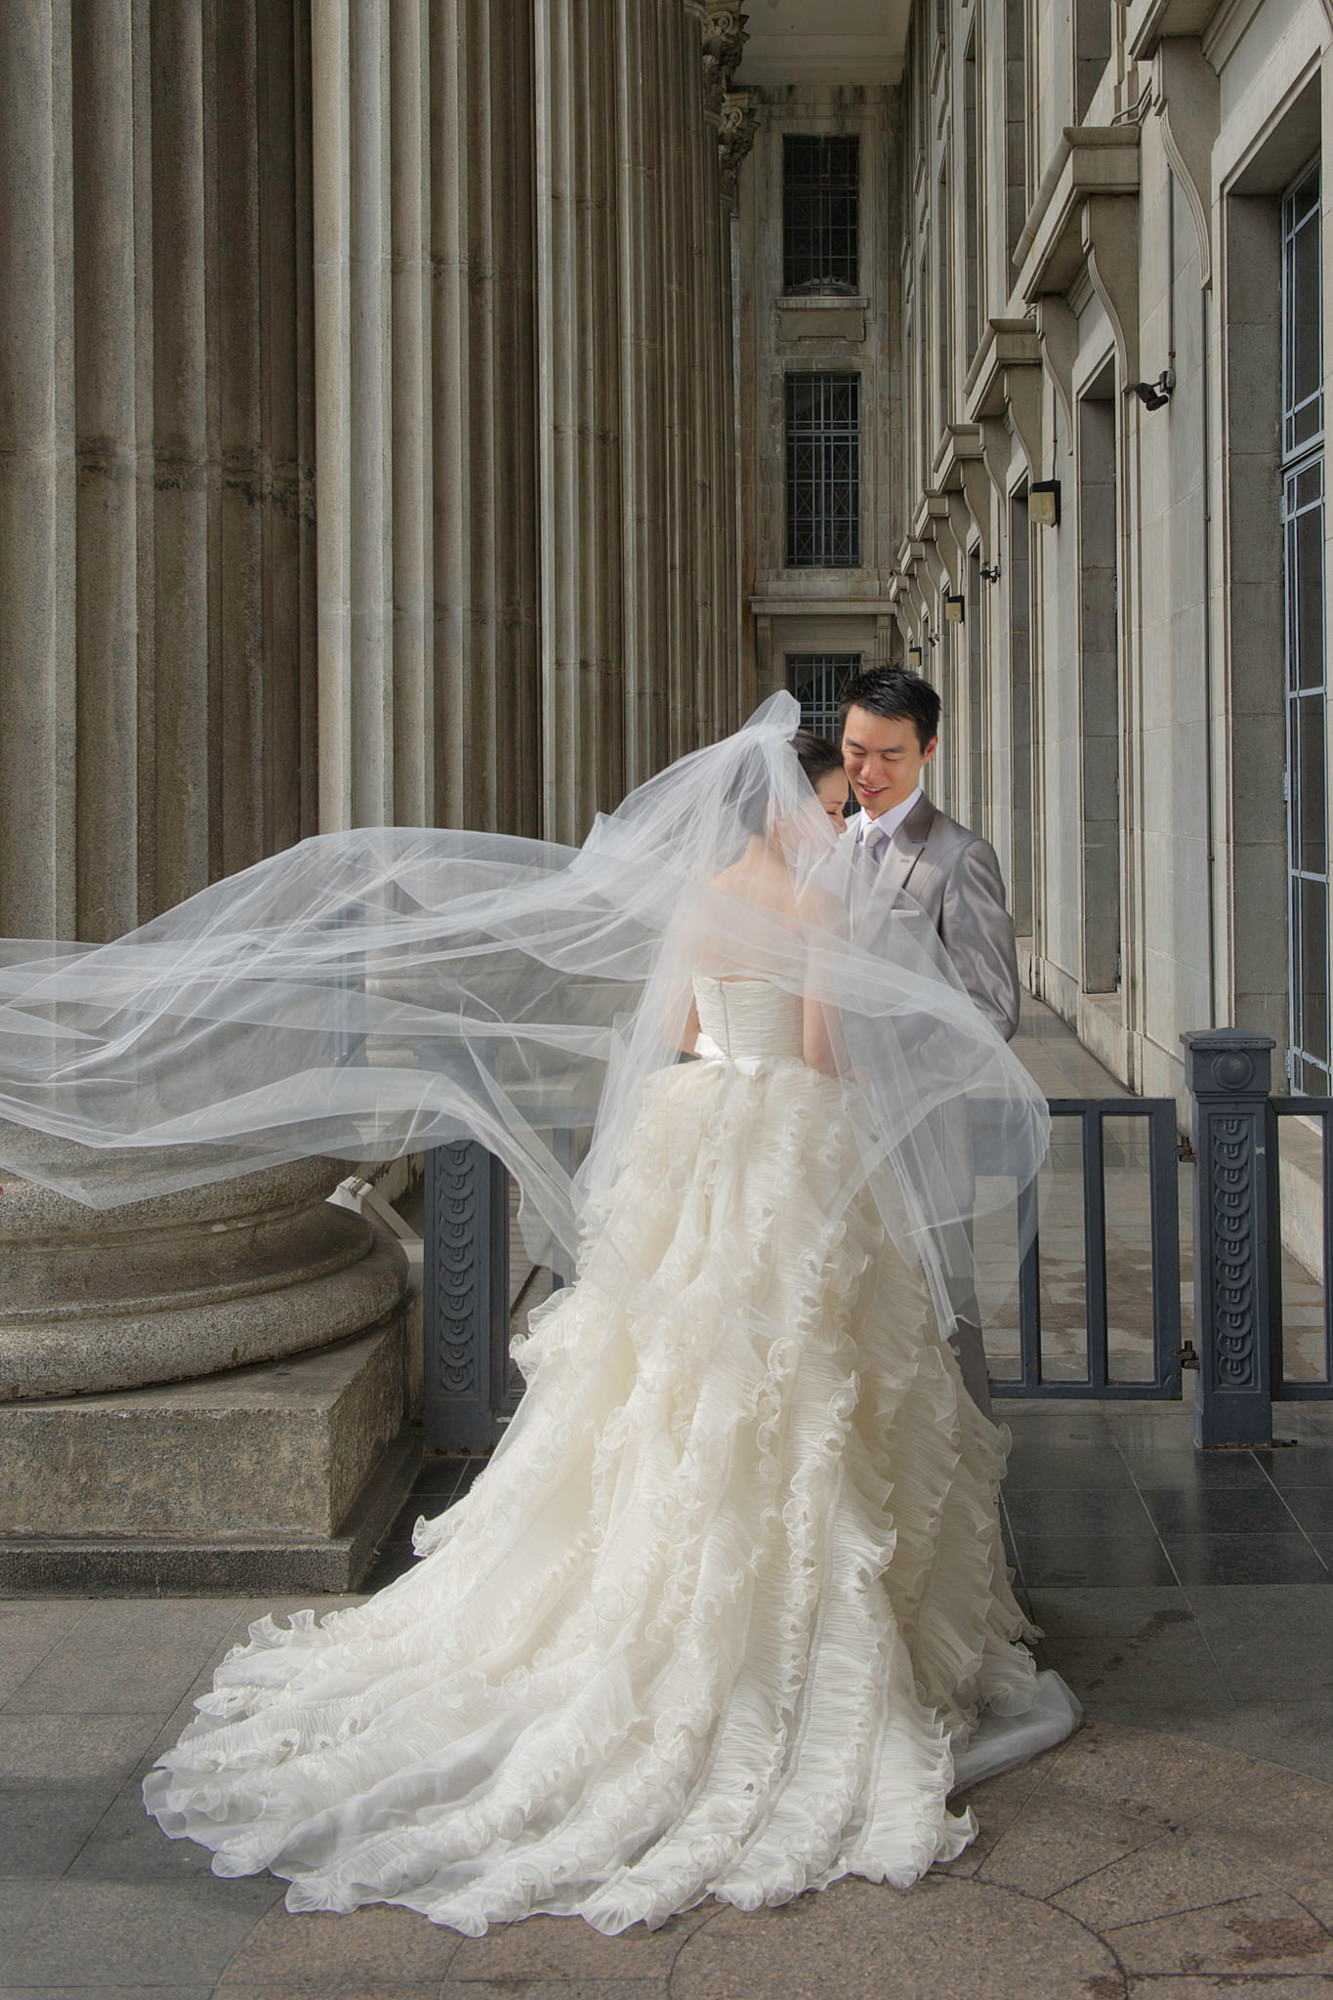 Classic portrait of groom and bride with blowing veil - Studio Impressions Photography